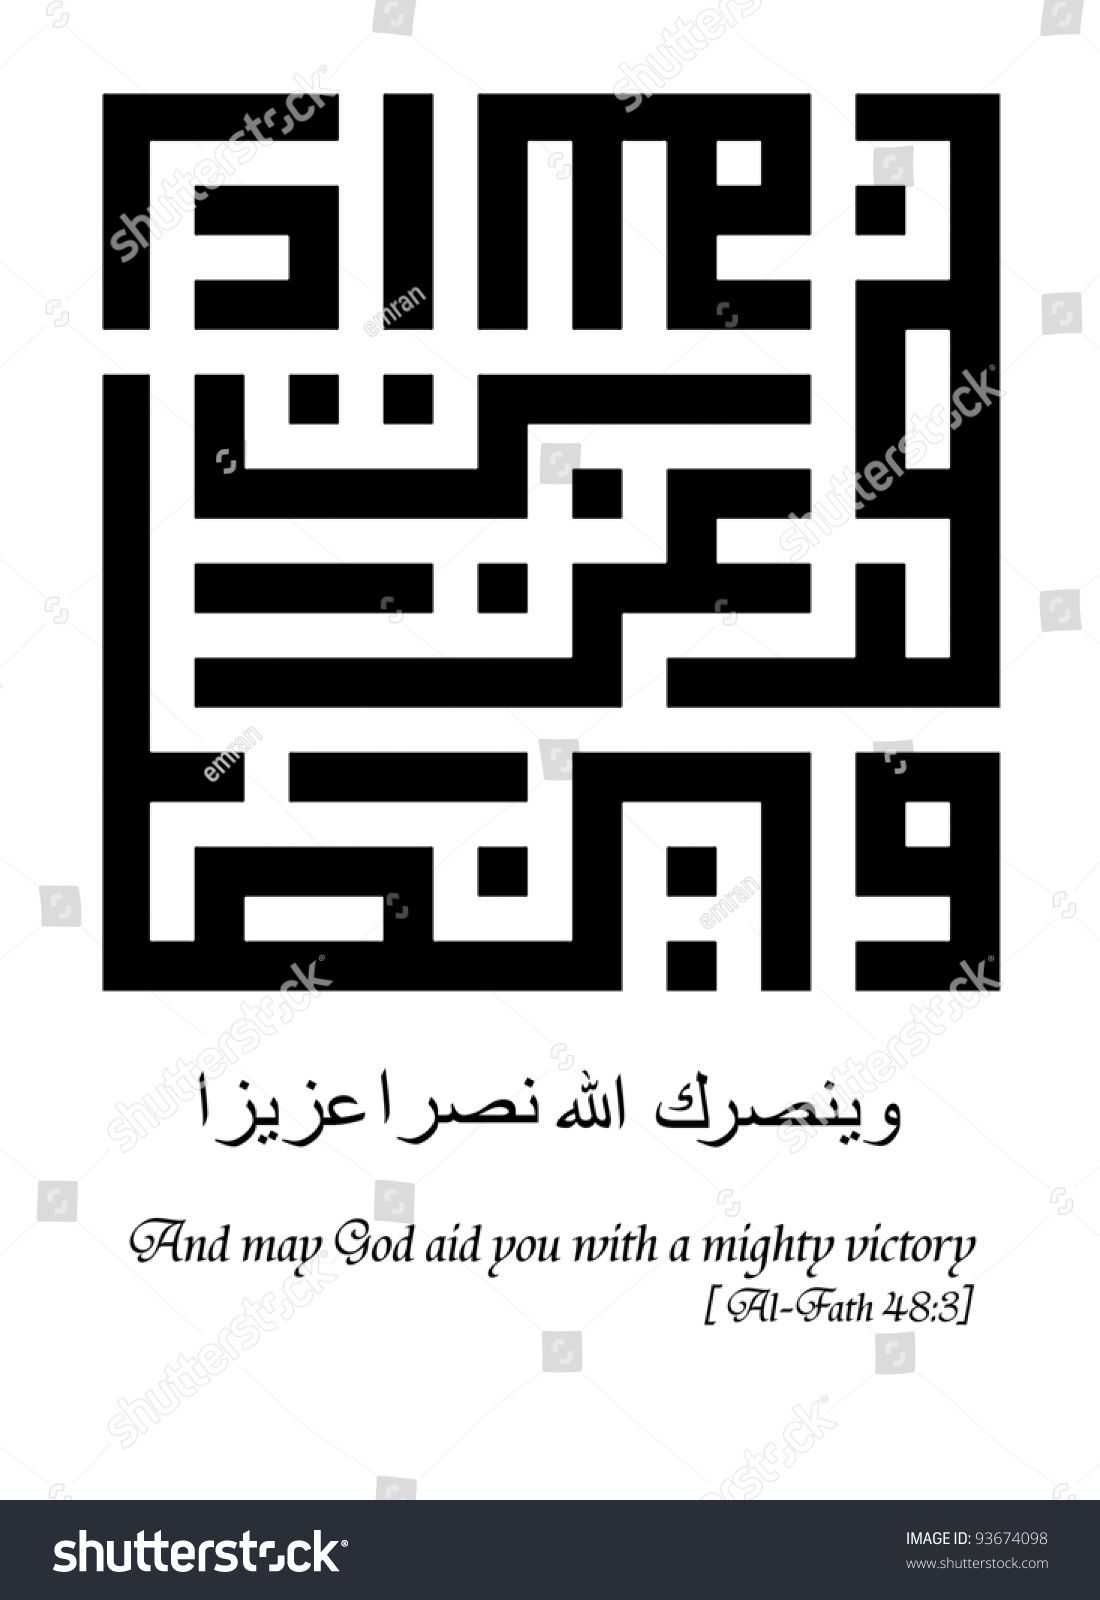 A Kufi Square Arabic Calligraphy Of A Koran Quran Verse Translated As And May God Aid You Islamic Art Calligraphy Persian Calligraphy Art Islamic Calligraphy